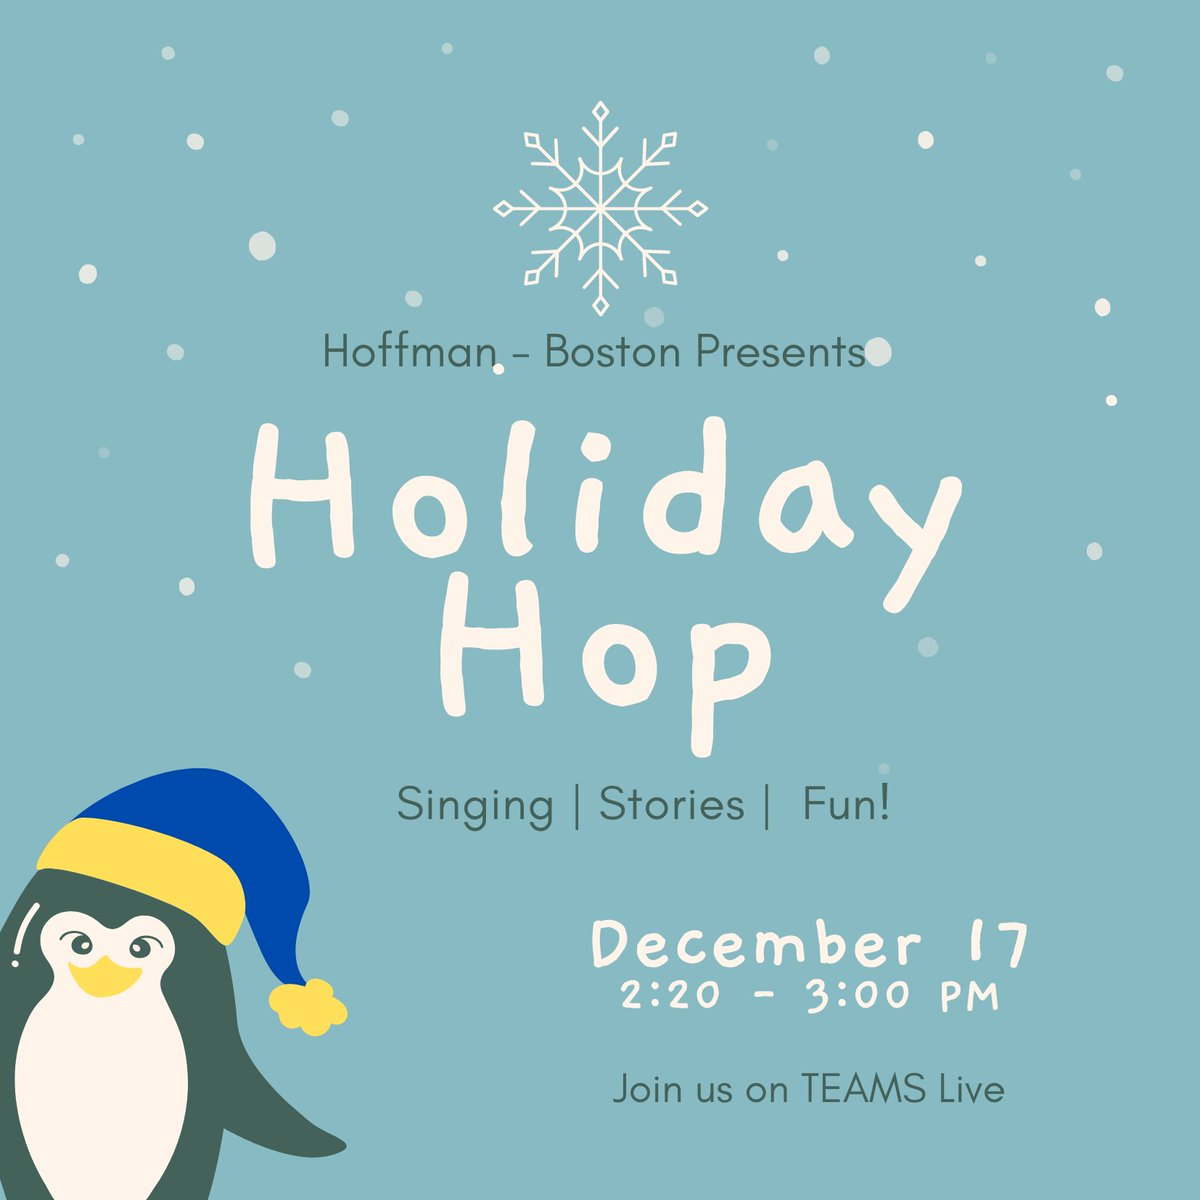 RT <a target='_blank' href='http://twitter.com/ProjEdisonHFB'>@ProjEdisonHFB</a>: The Holiday Hop is coming!!! Be sure to join us this Thursday! <a target='_blank' href='http://twitter.com/MusicHFB'>@MusicHFB</a> <a target='_blank' href='http://twitter.com/HFBpe'>@HFBpe</a> <a target='_blank' href='http://twitter.com/artHFB'>@artHFB</a> <a target='_blank' href='http://twitter.com/HFBSTEM'>@HFBSTEM</a> <a target='_blank' href='https://t.co/twJLgu6Ap2'>https://t.co/twJLgu6Ap2</a>